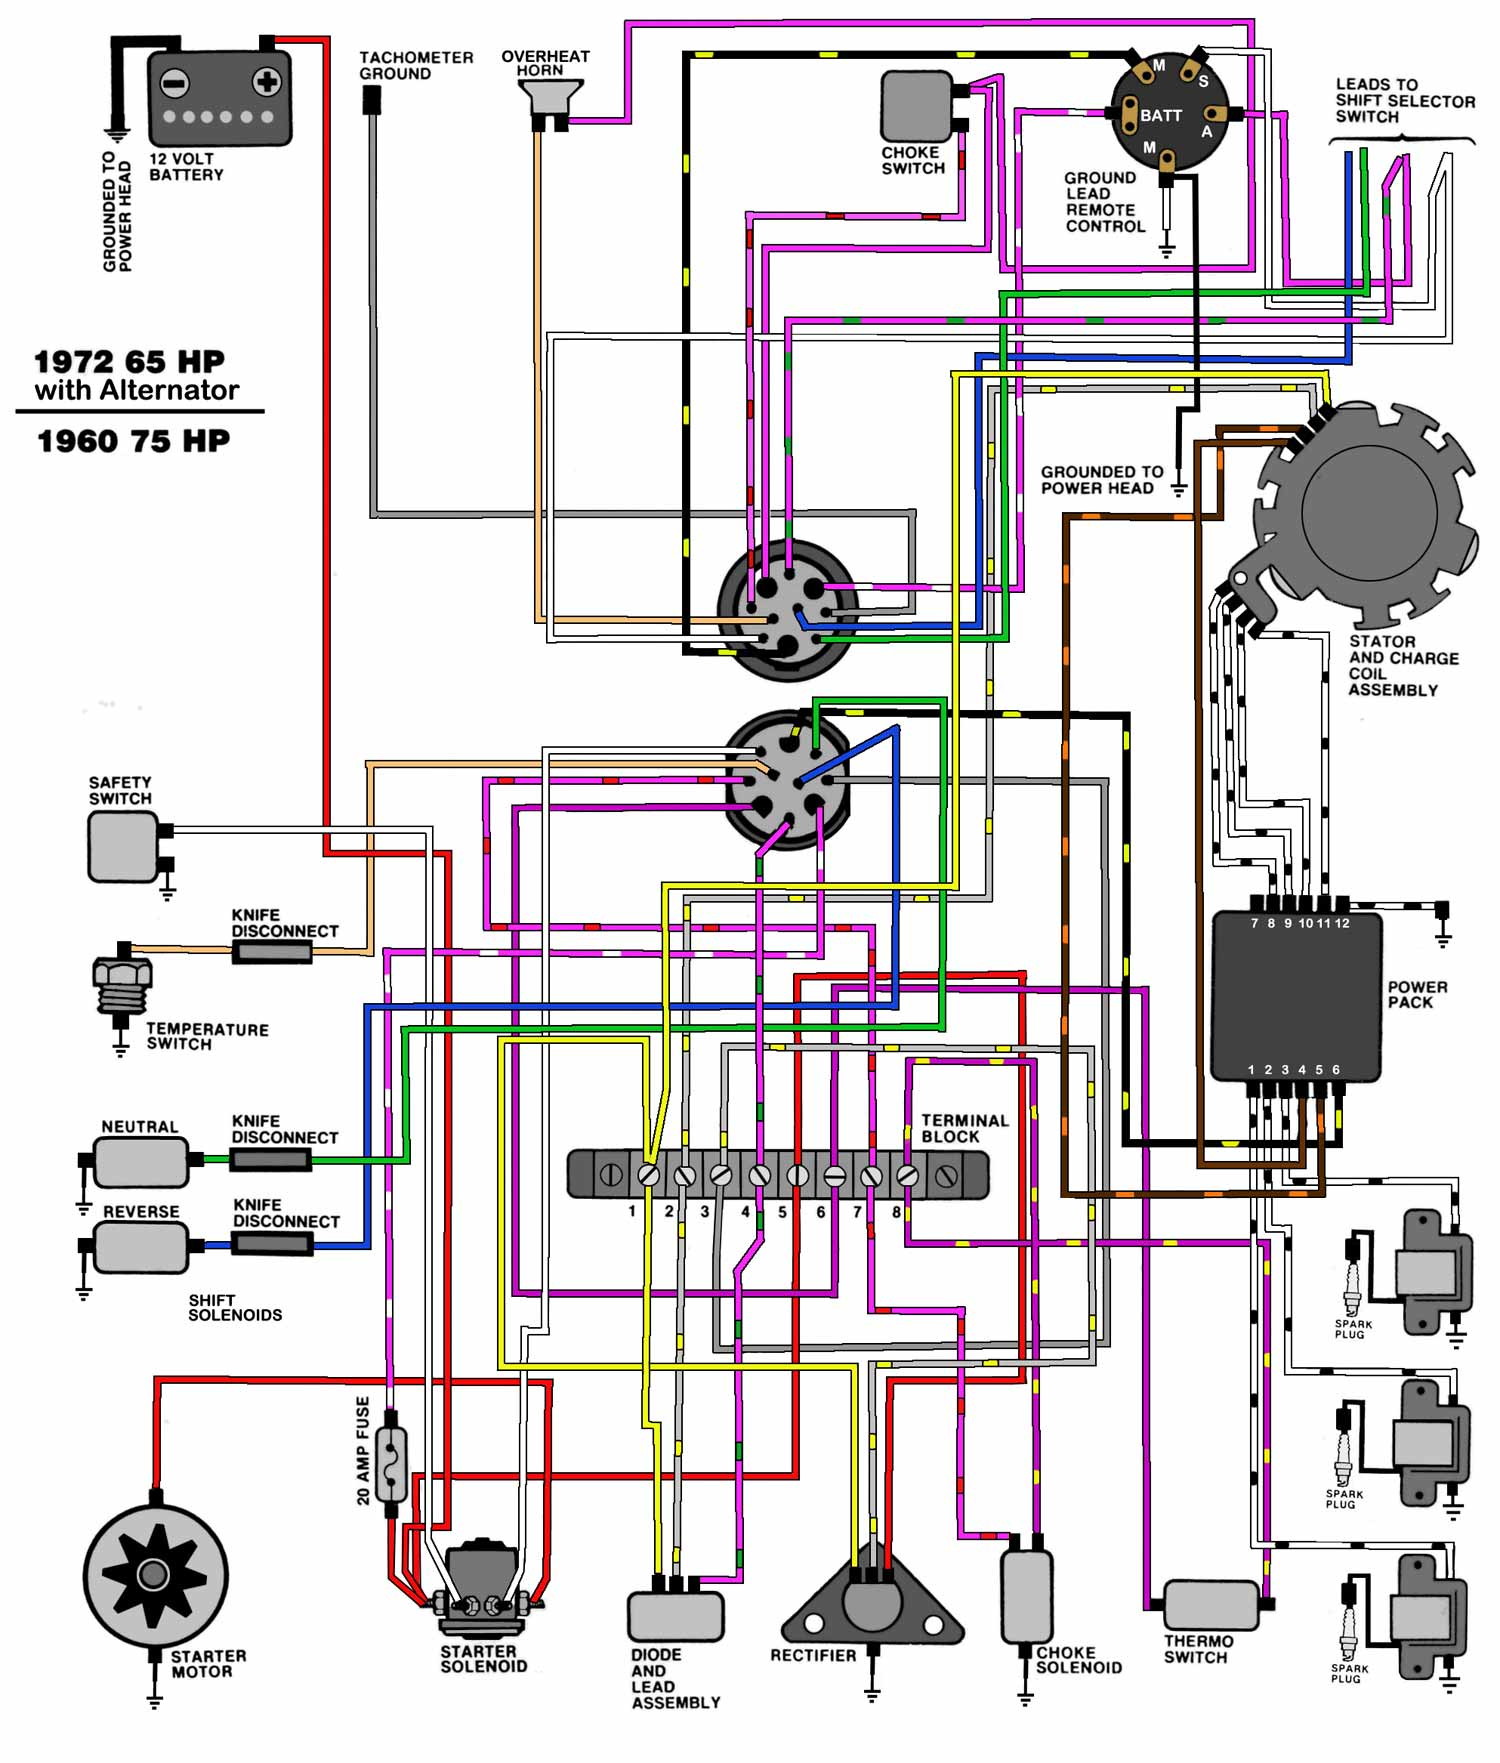 Wiring Diagram For 1968 Mgb Wire Data Schema 1972 Mg Midget Ignition Evinrude Johnson Outboard Diagrams Mastertech 1977 1980 Auto